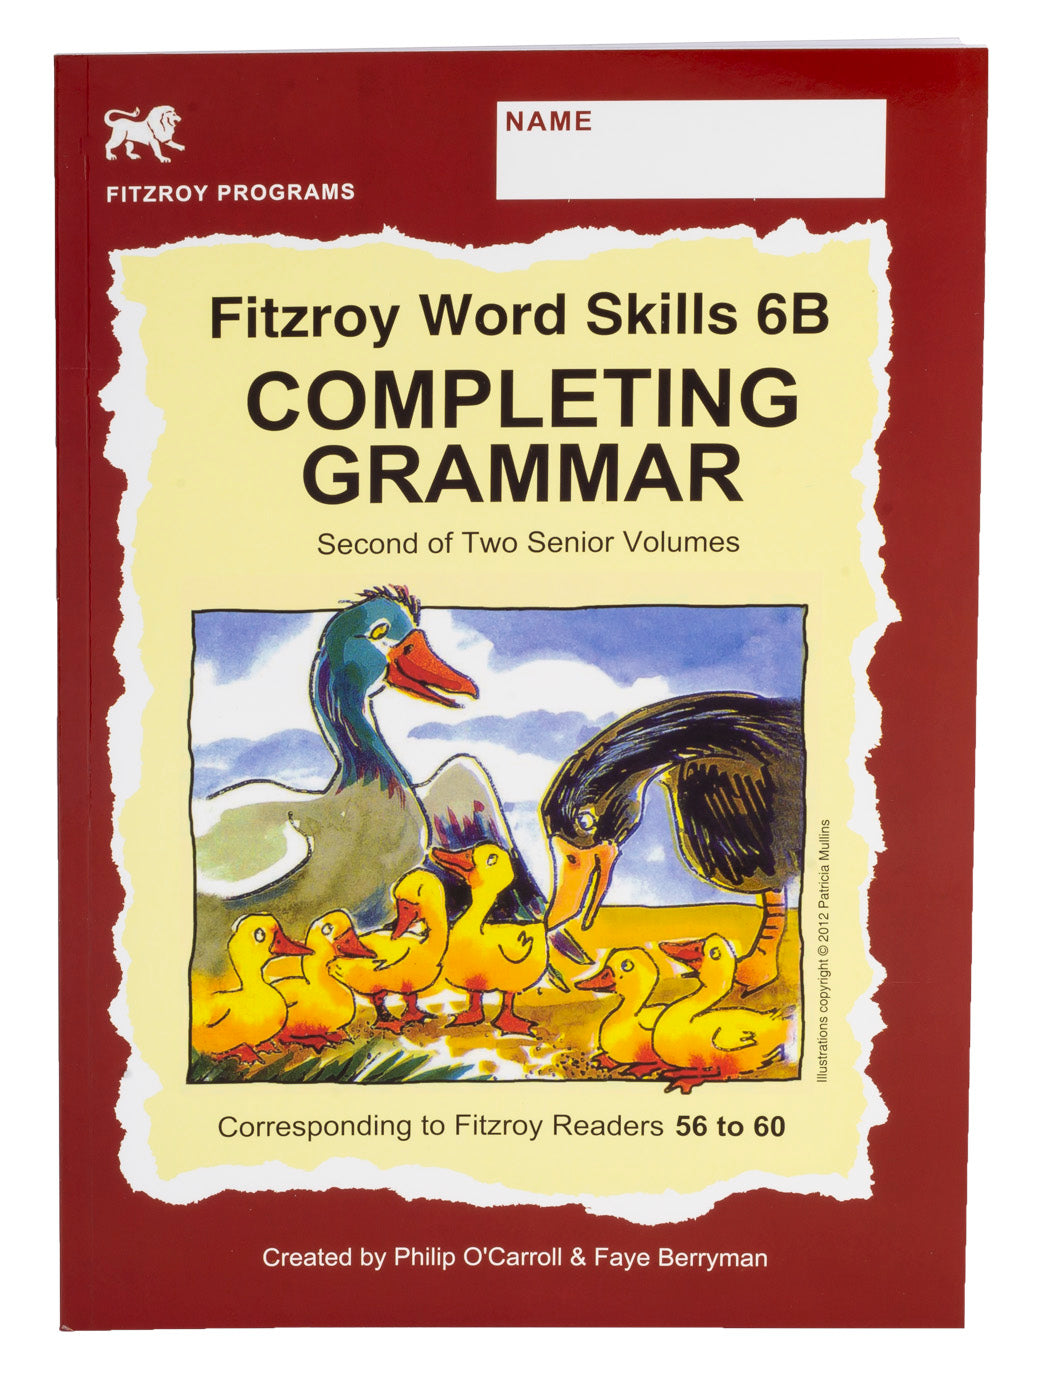 Fitzroy Word Skills 6B - Reader Levels 56-60